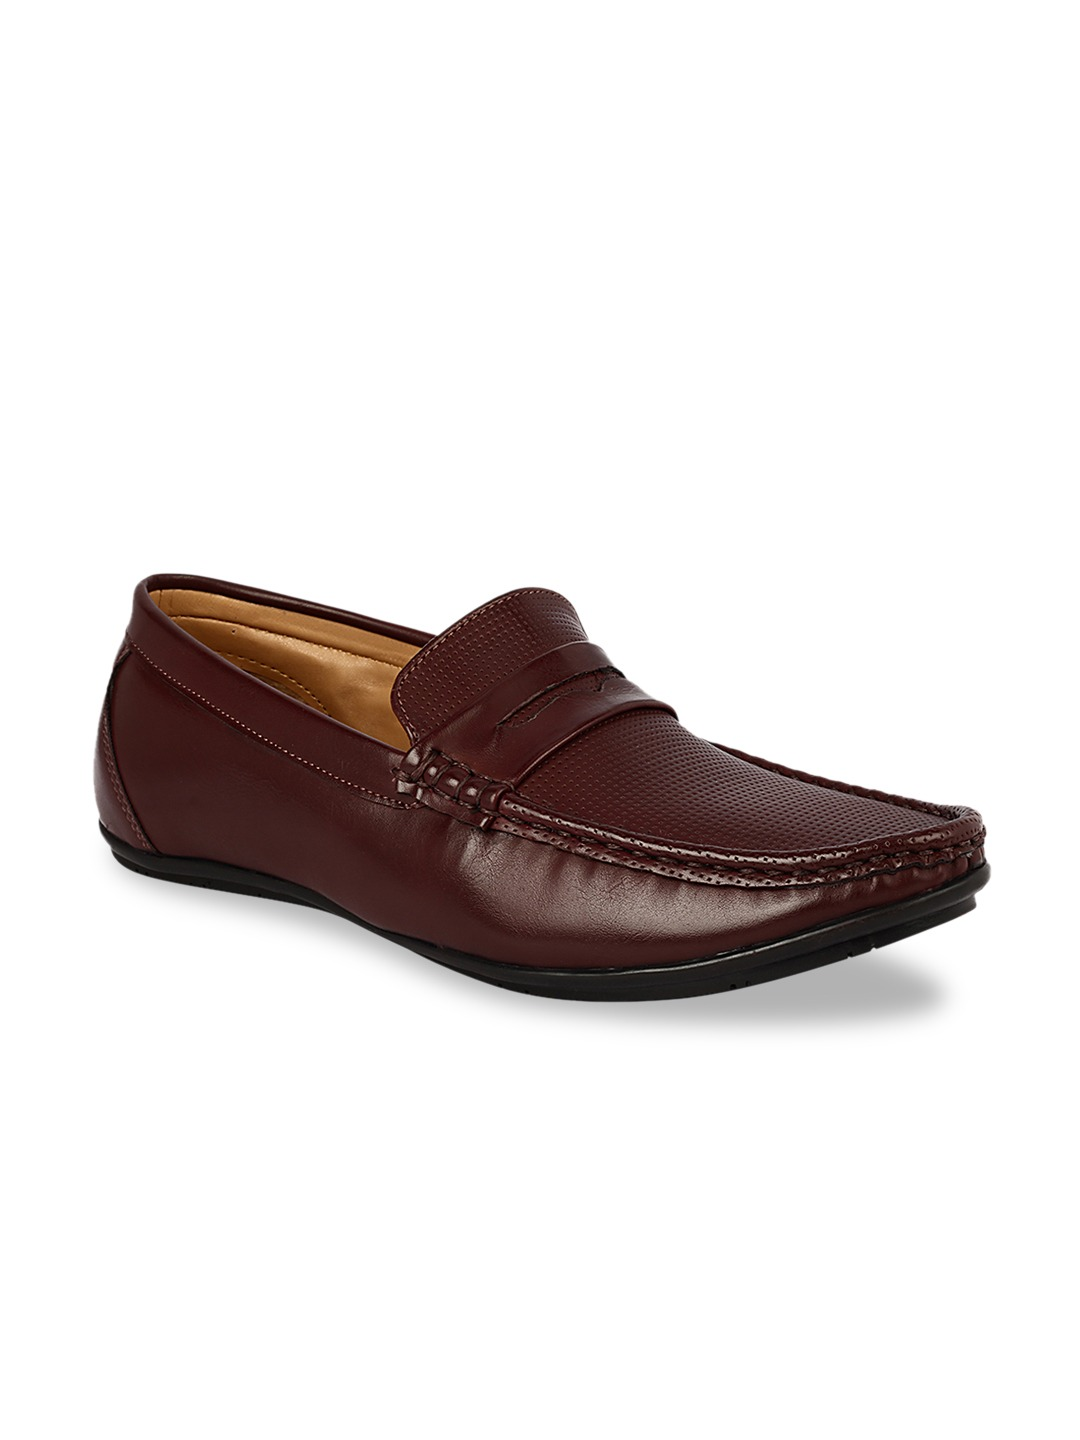 Brown Solid Formal Loafers